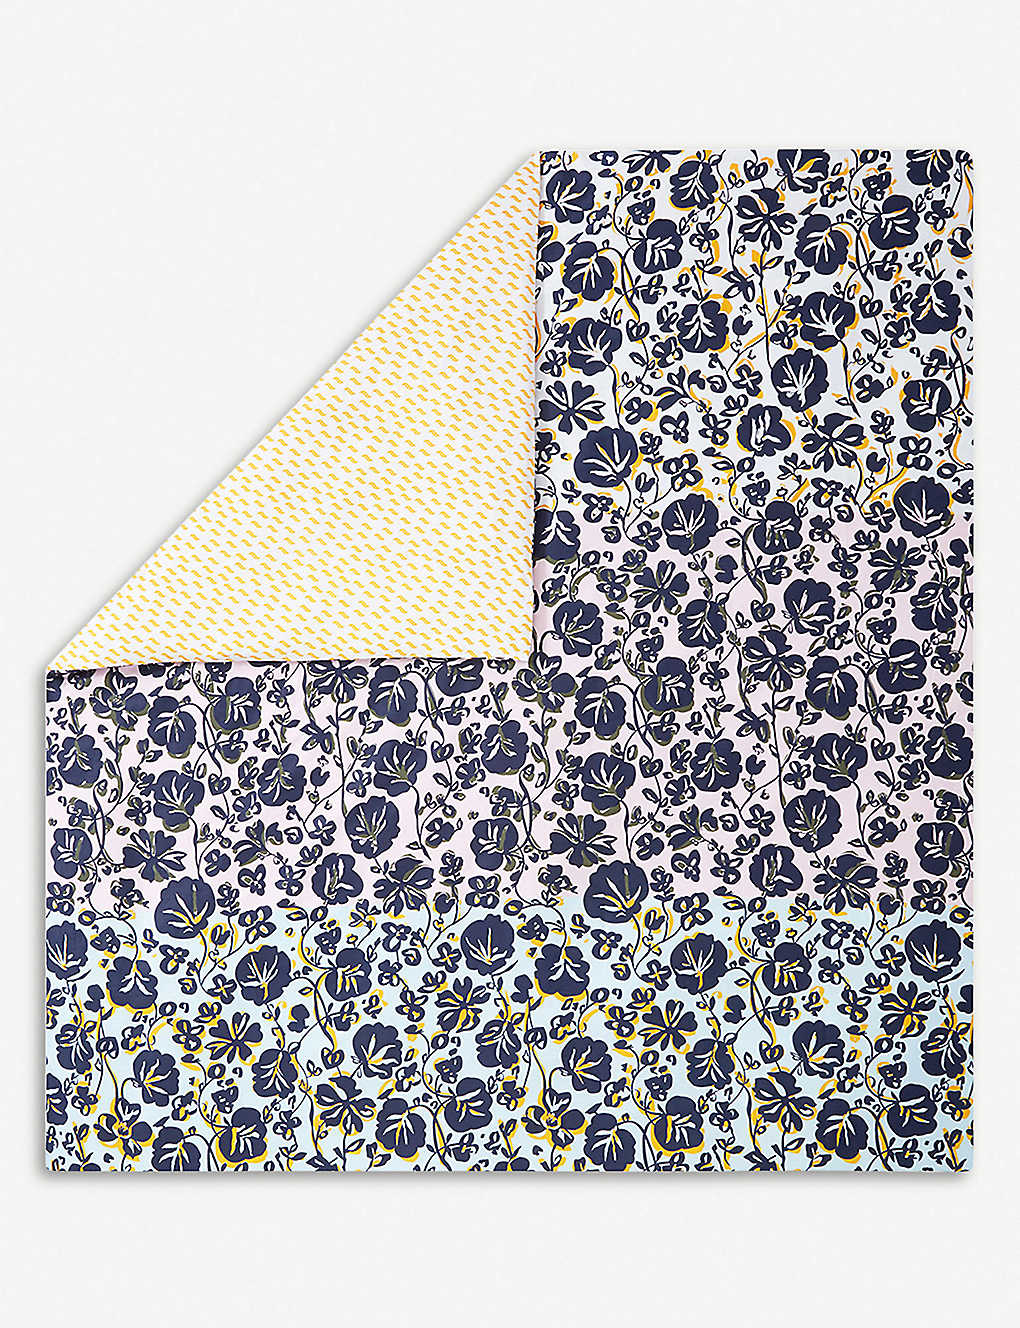 18adcd8413 KENZO KFLORAL floral and geometric cotton king duvet cover 240x220cm